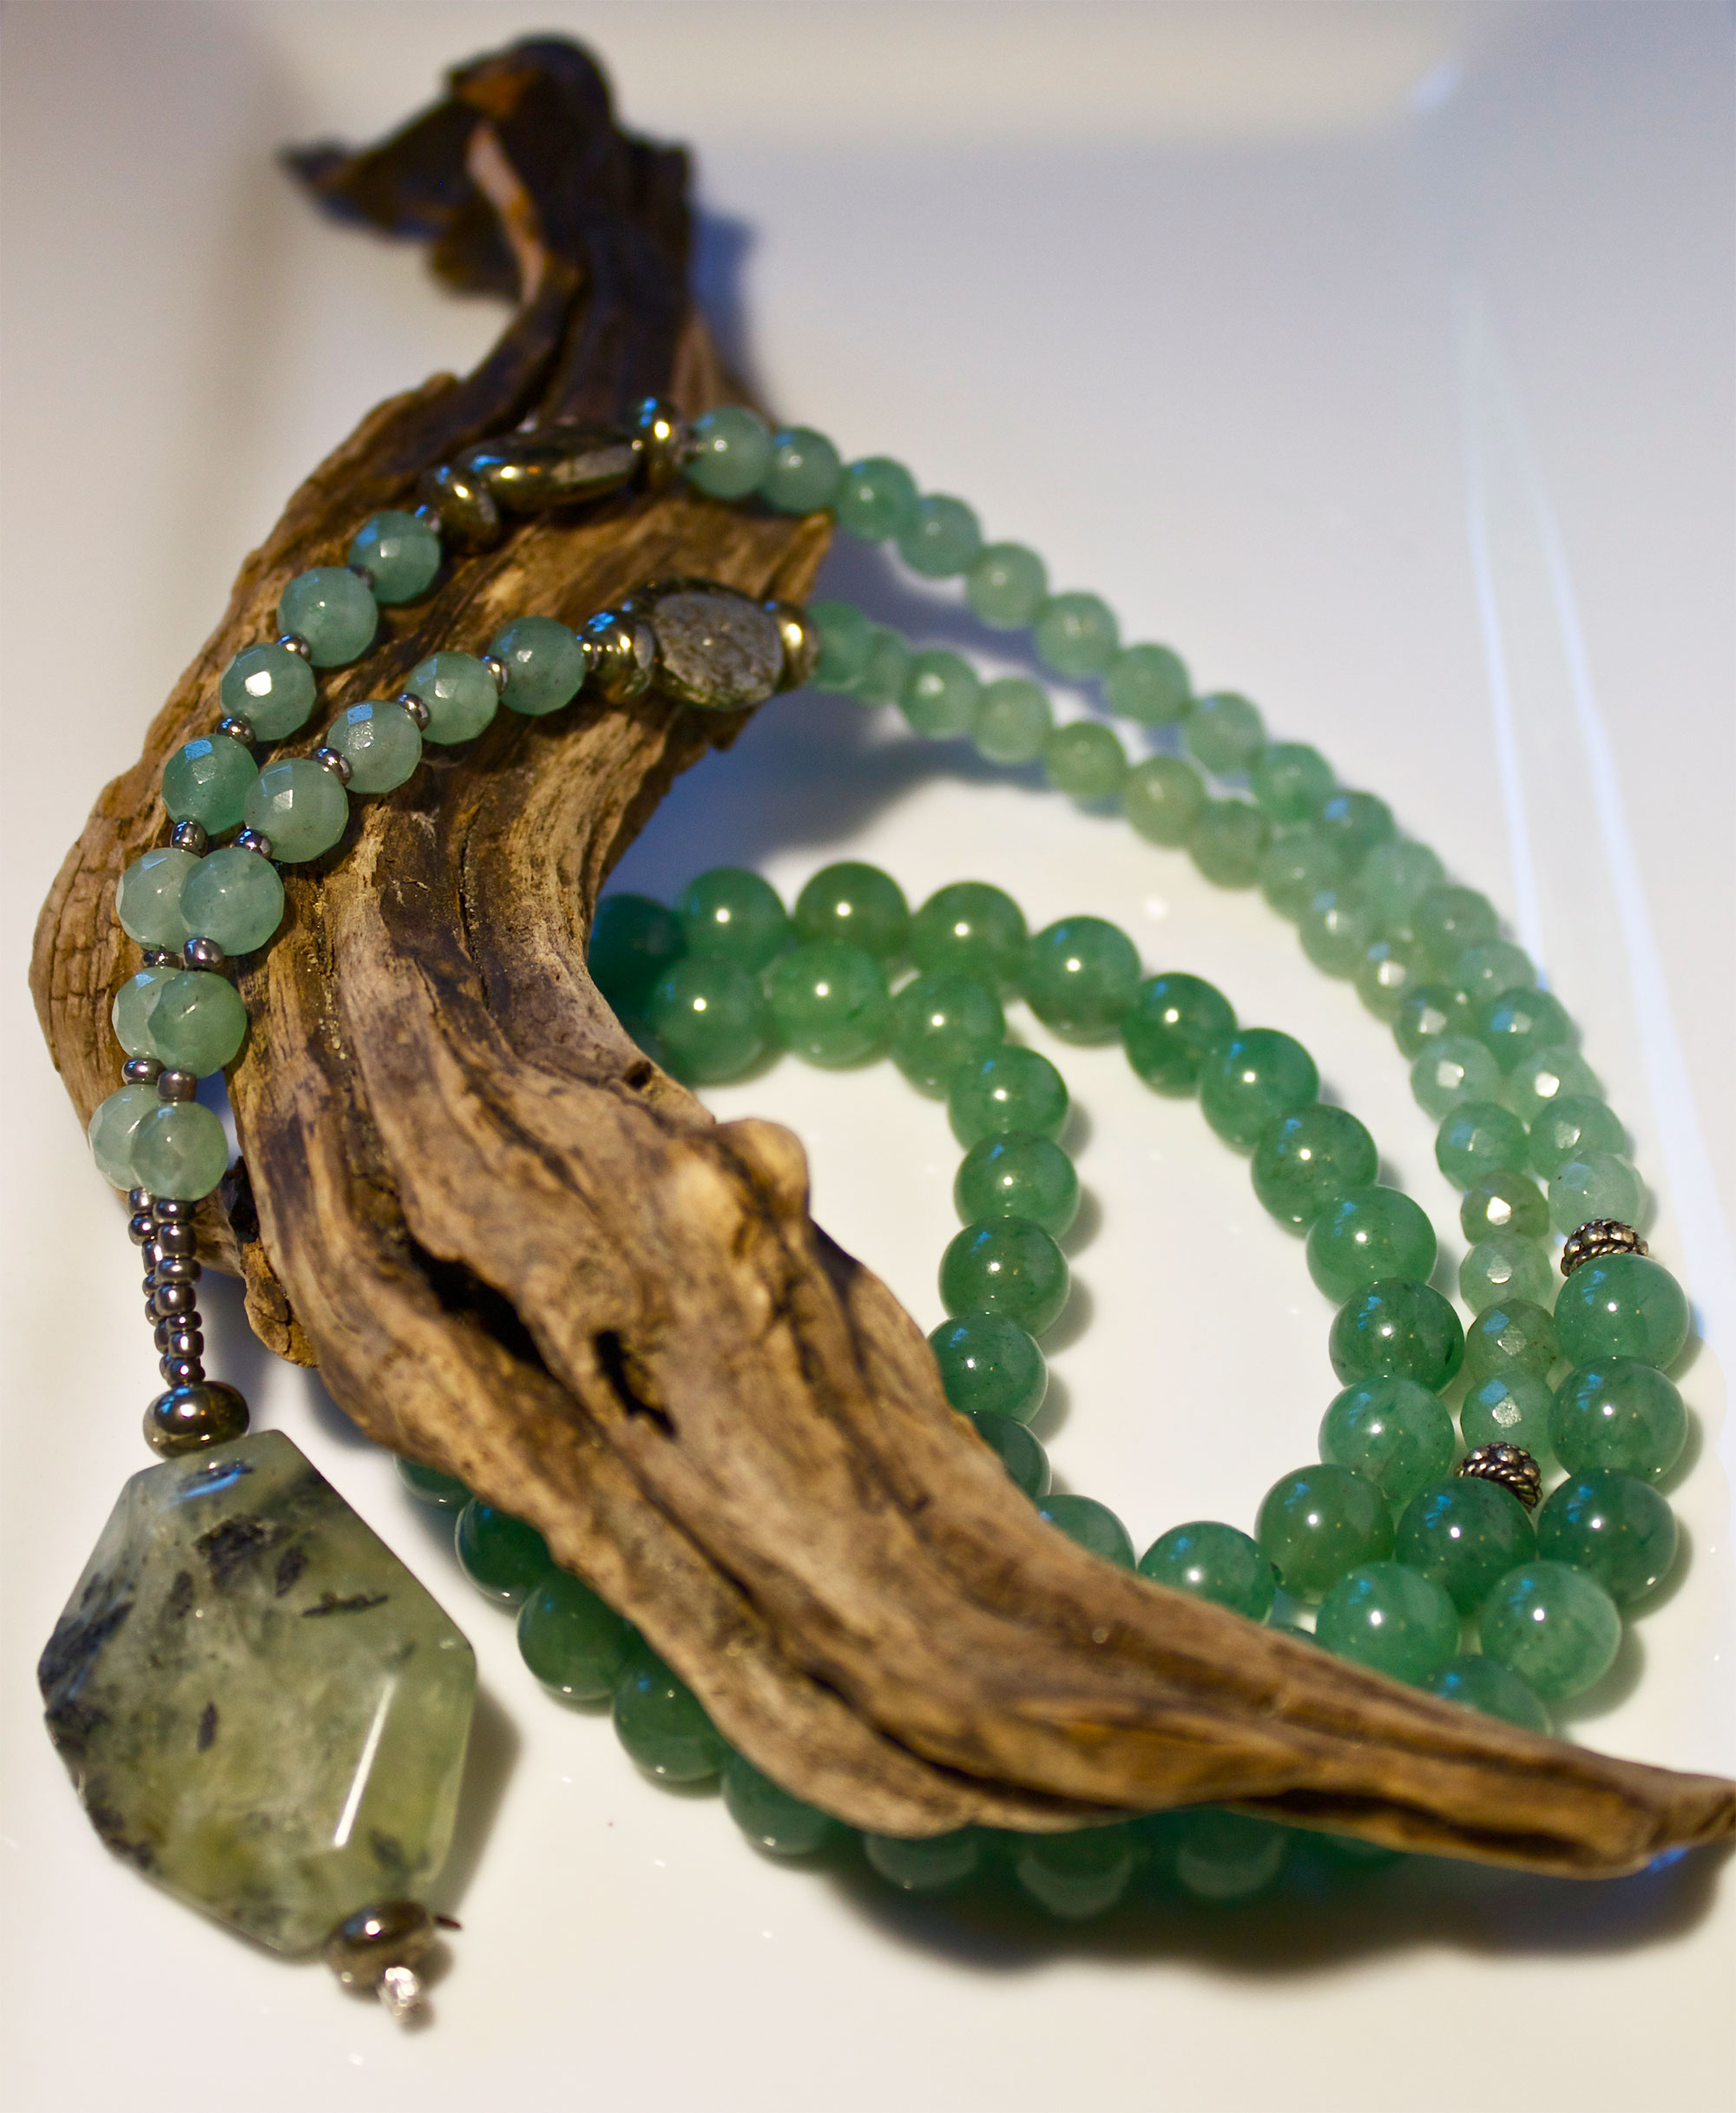 green-aventurine-and-pyrite-with-prehinite-nugget-mala.jpg